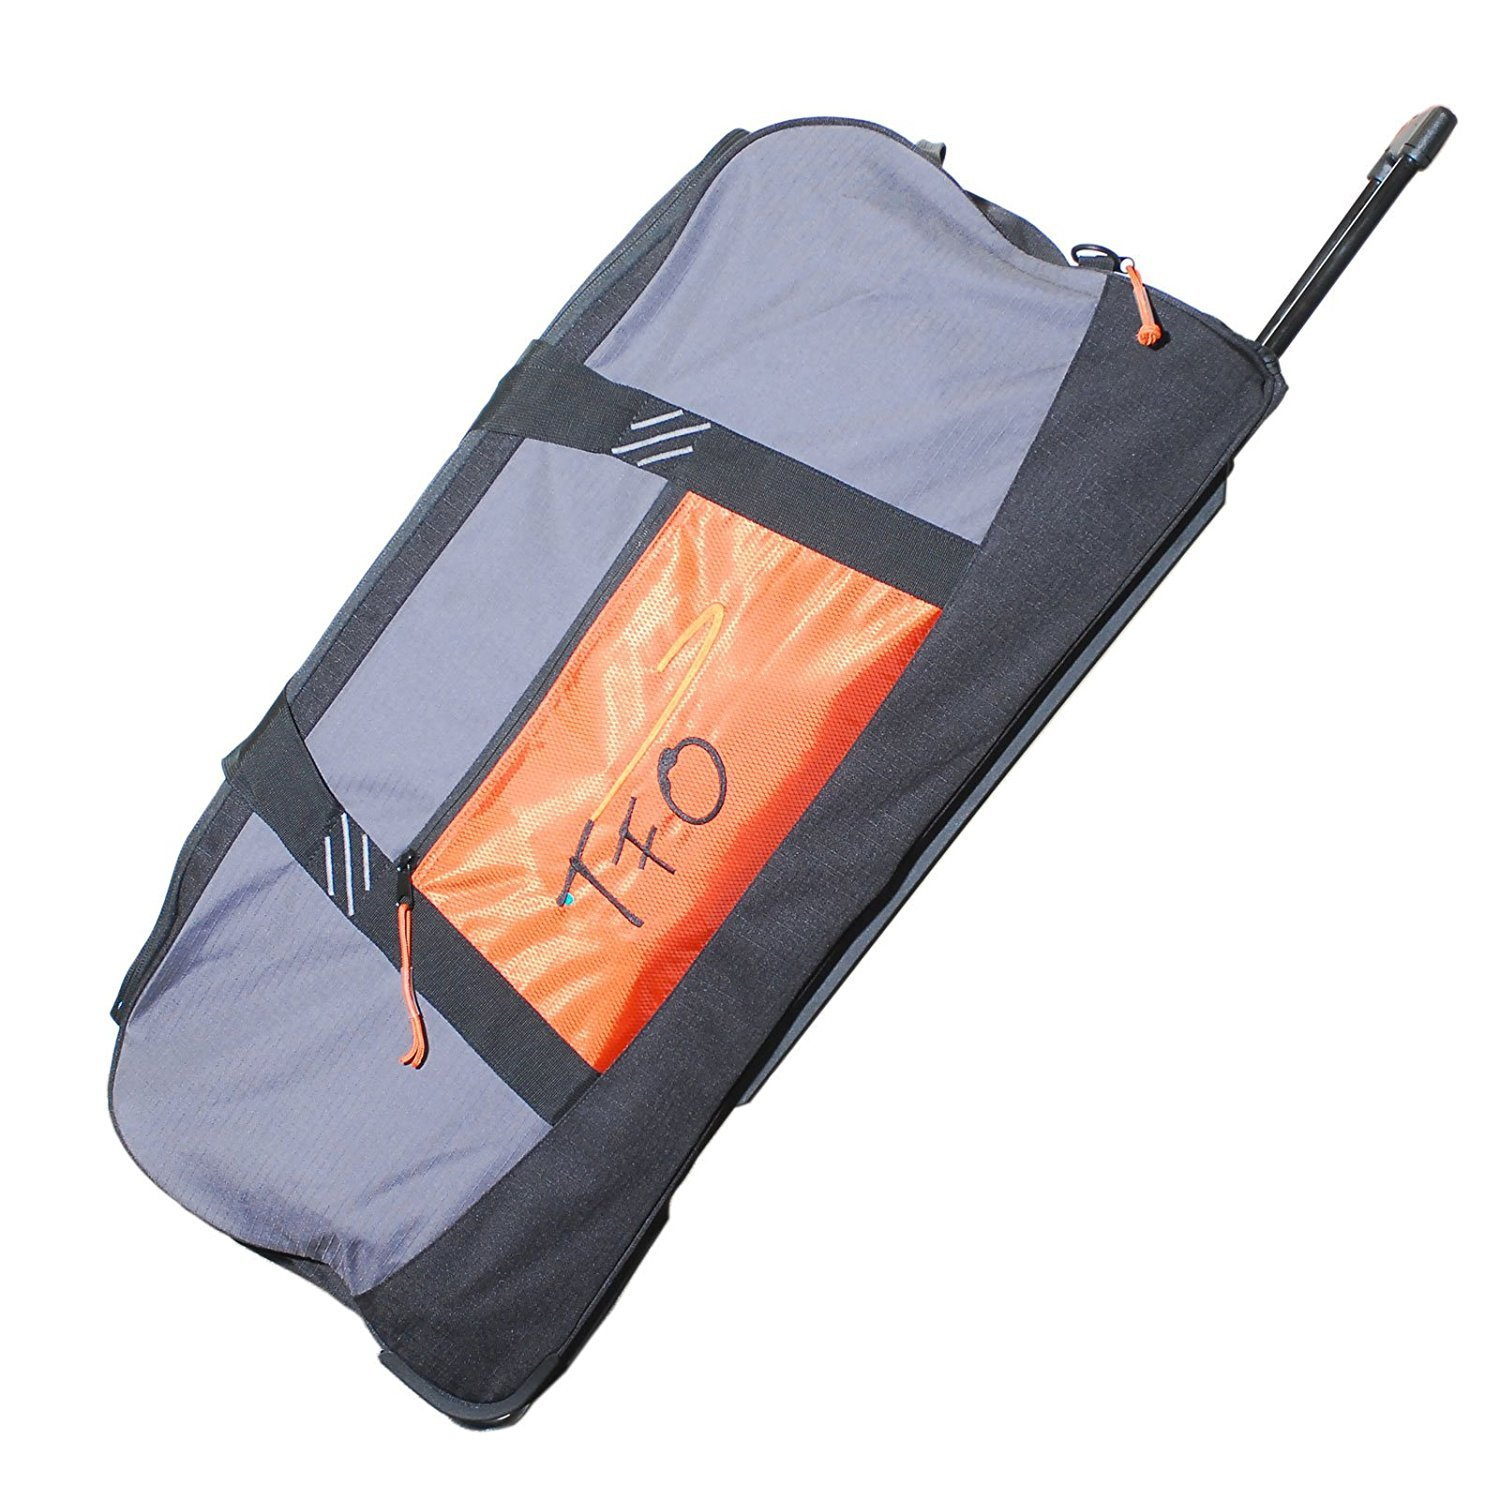 TFO 3616CB Large Rolling Fly Fishing Cargo Bag/Luggage, Grey